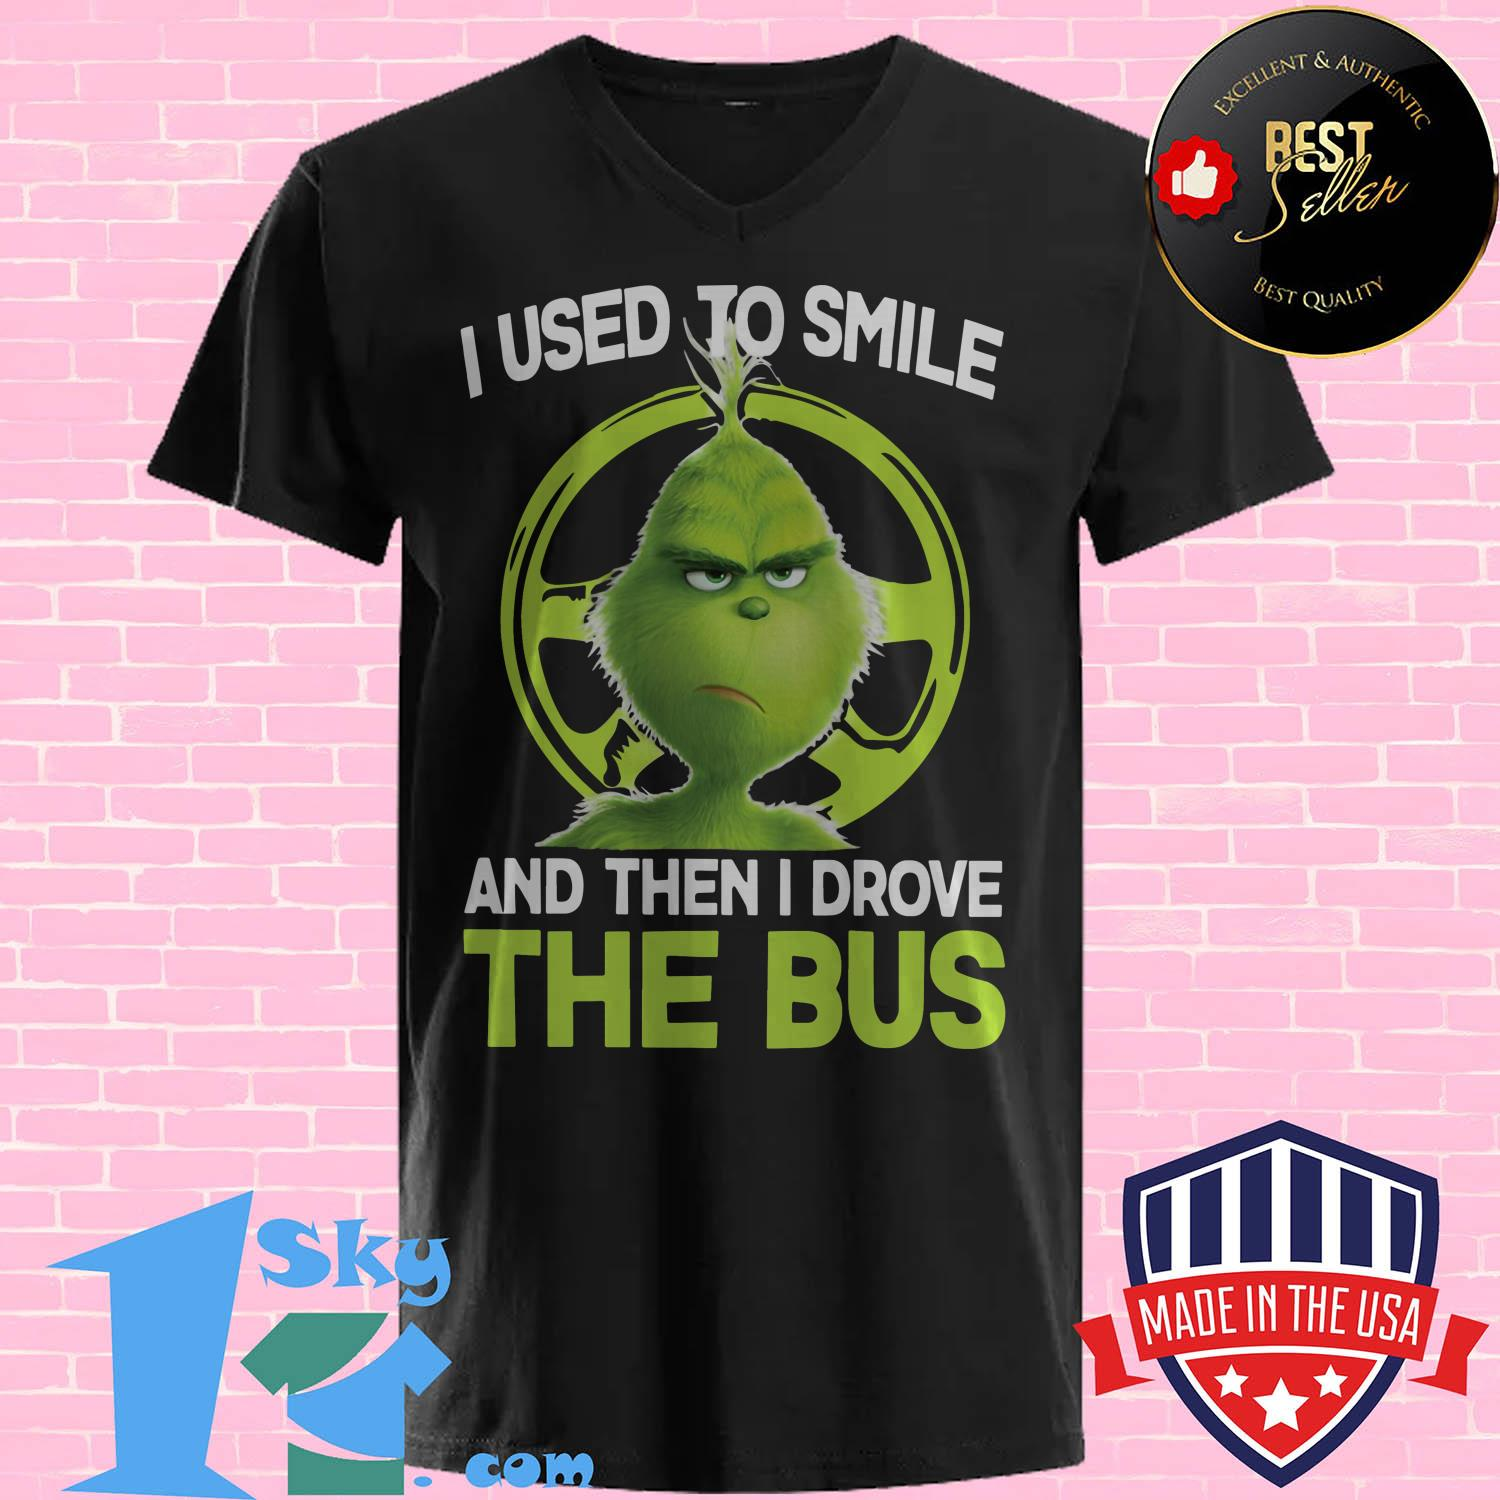 the grinch i used to smile and then i drove the bus v neck - The Grinch I Used To Smile And Then I Drove The Bus shirt